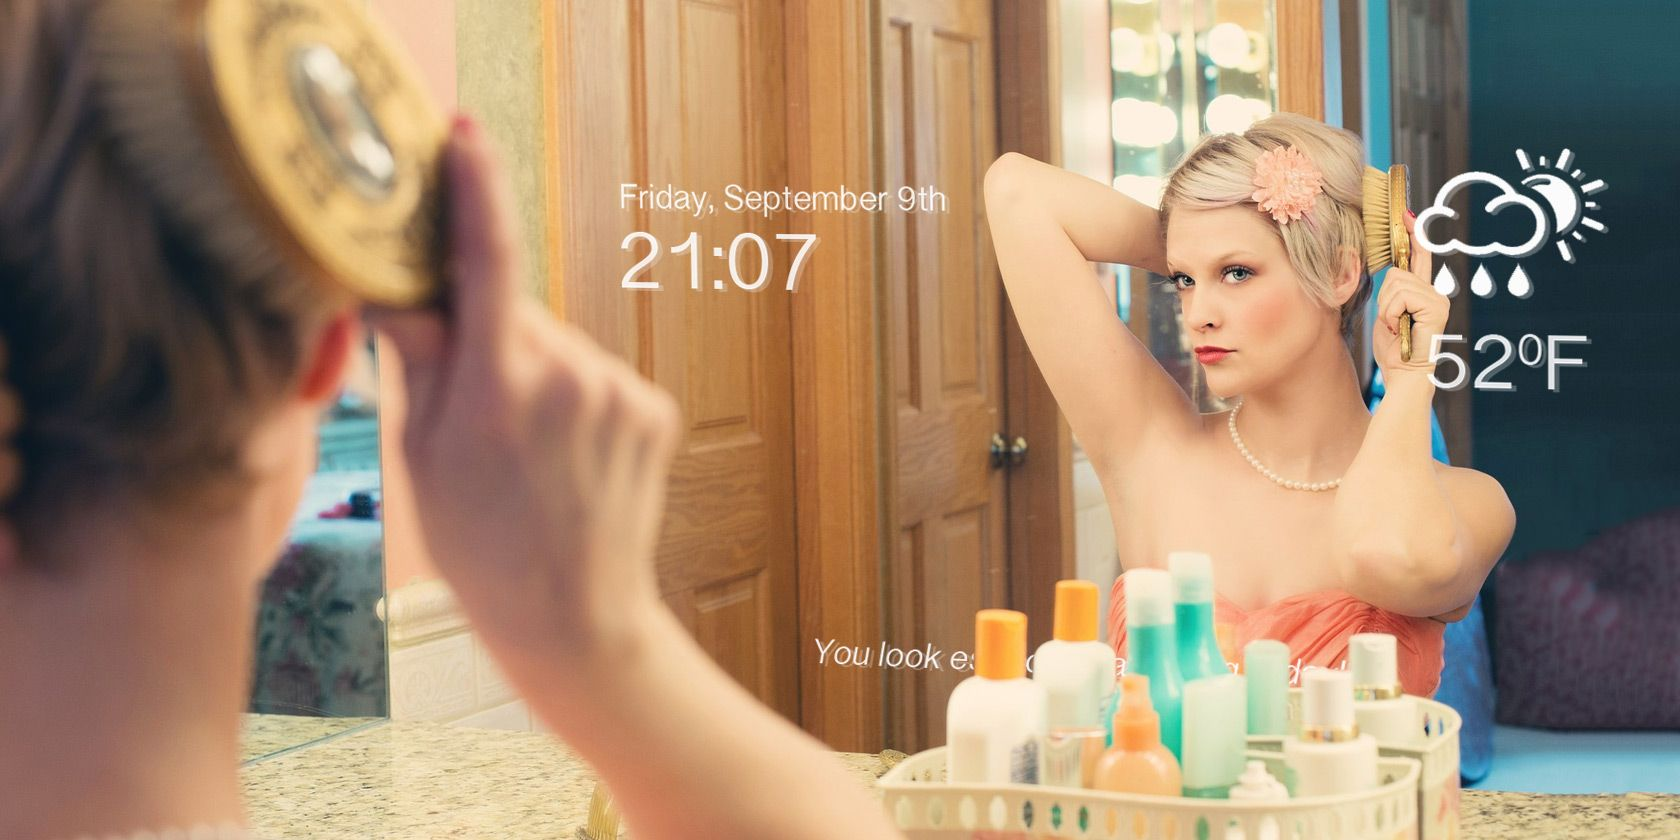 The 6 Best Raspberry Pi Smart Mirror Projects You Can Make